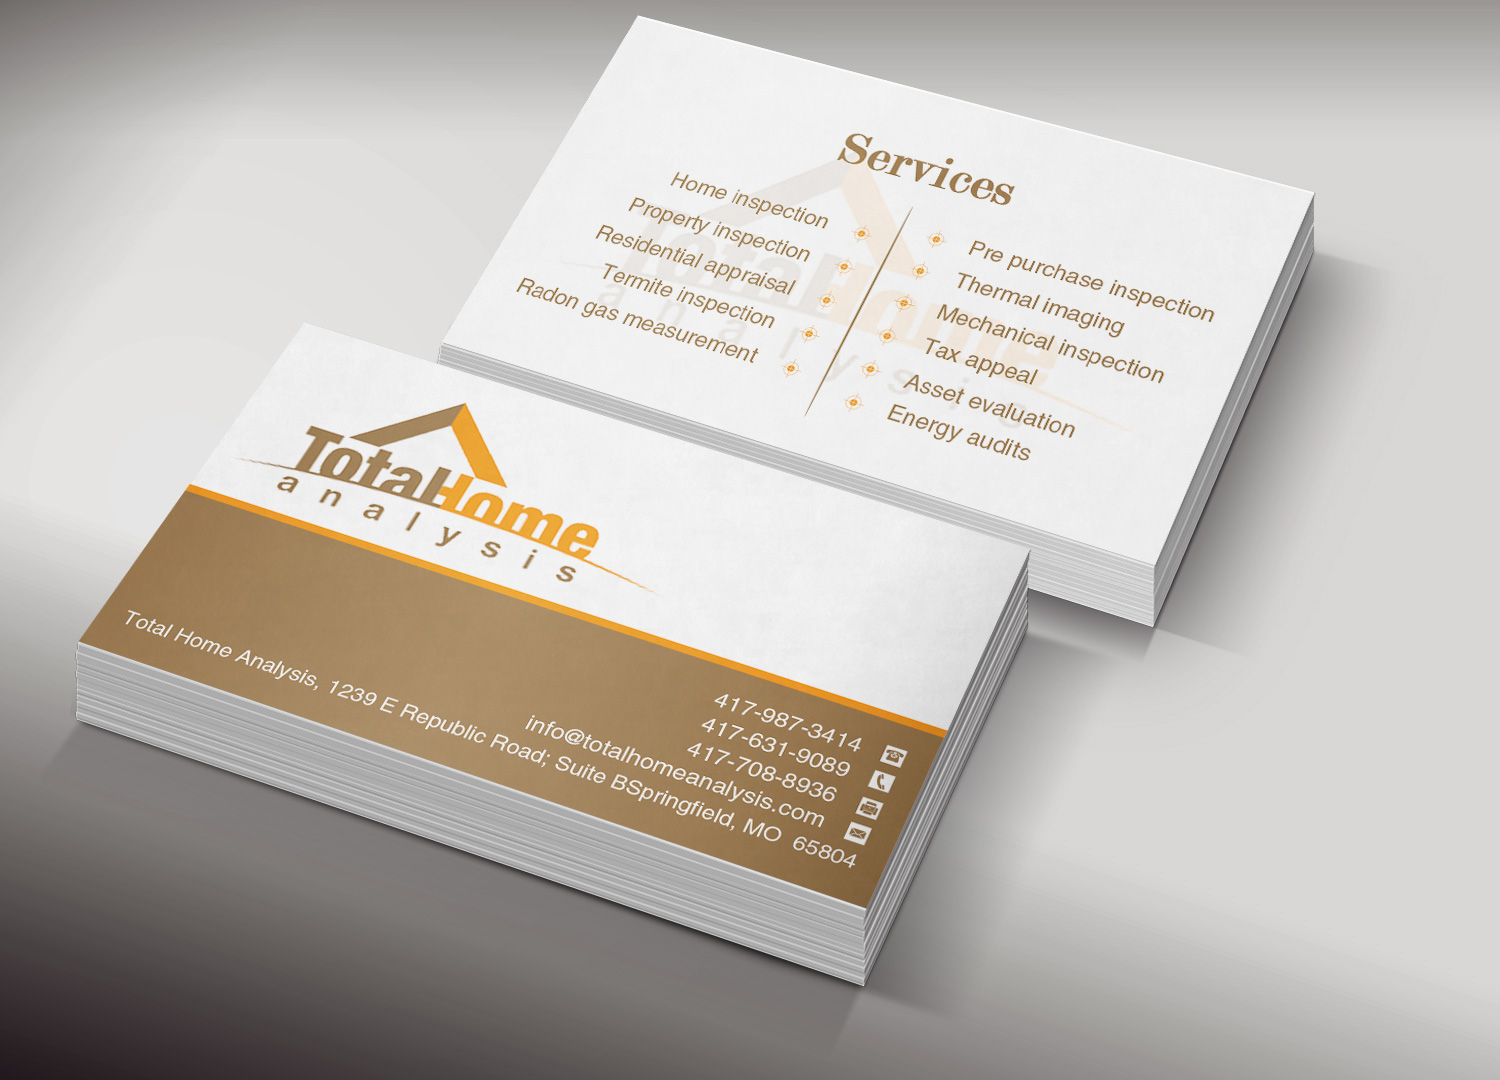 Business business card design for total home analysis by creation business business card design for total home analysis in united states design 7886162 colourmoves